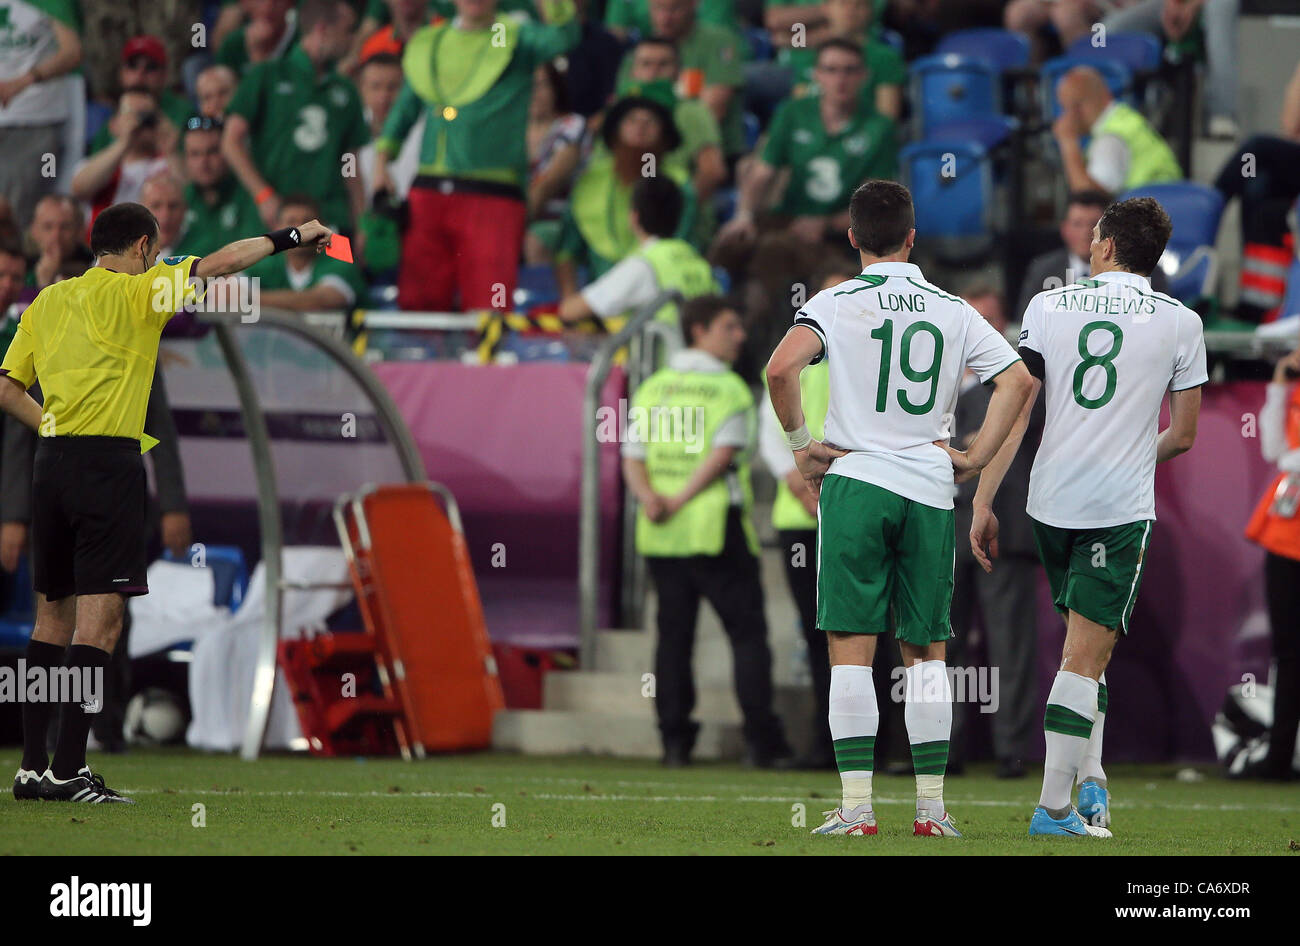 KEITH ANDREWS IS SENT OFF ITALY V REP. OF IRELAND MUNICIPAL STADIUM POZNAN POLAND 18 June 2012 - Stock Image